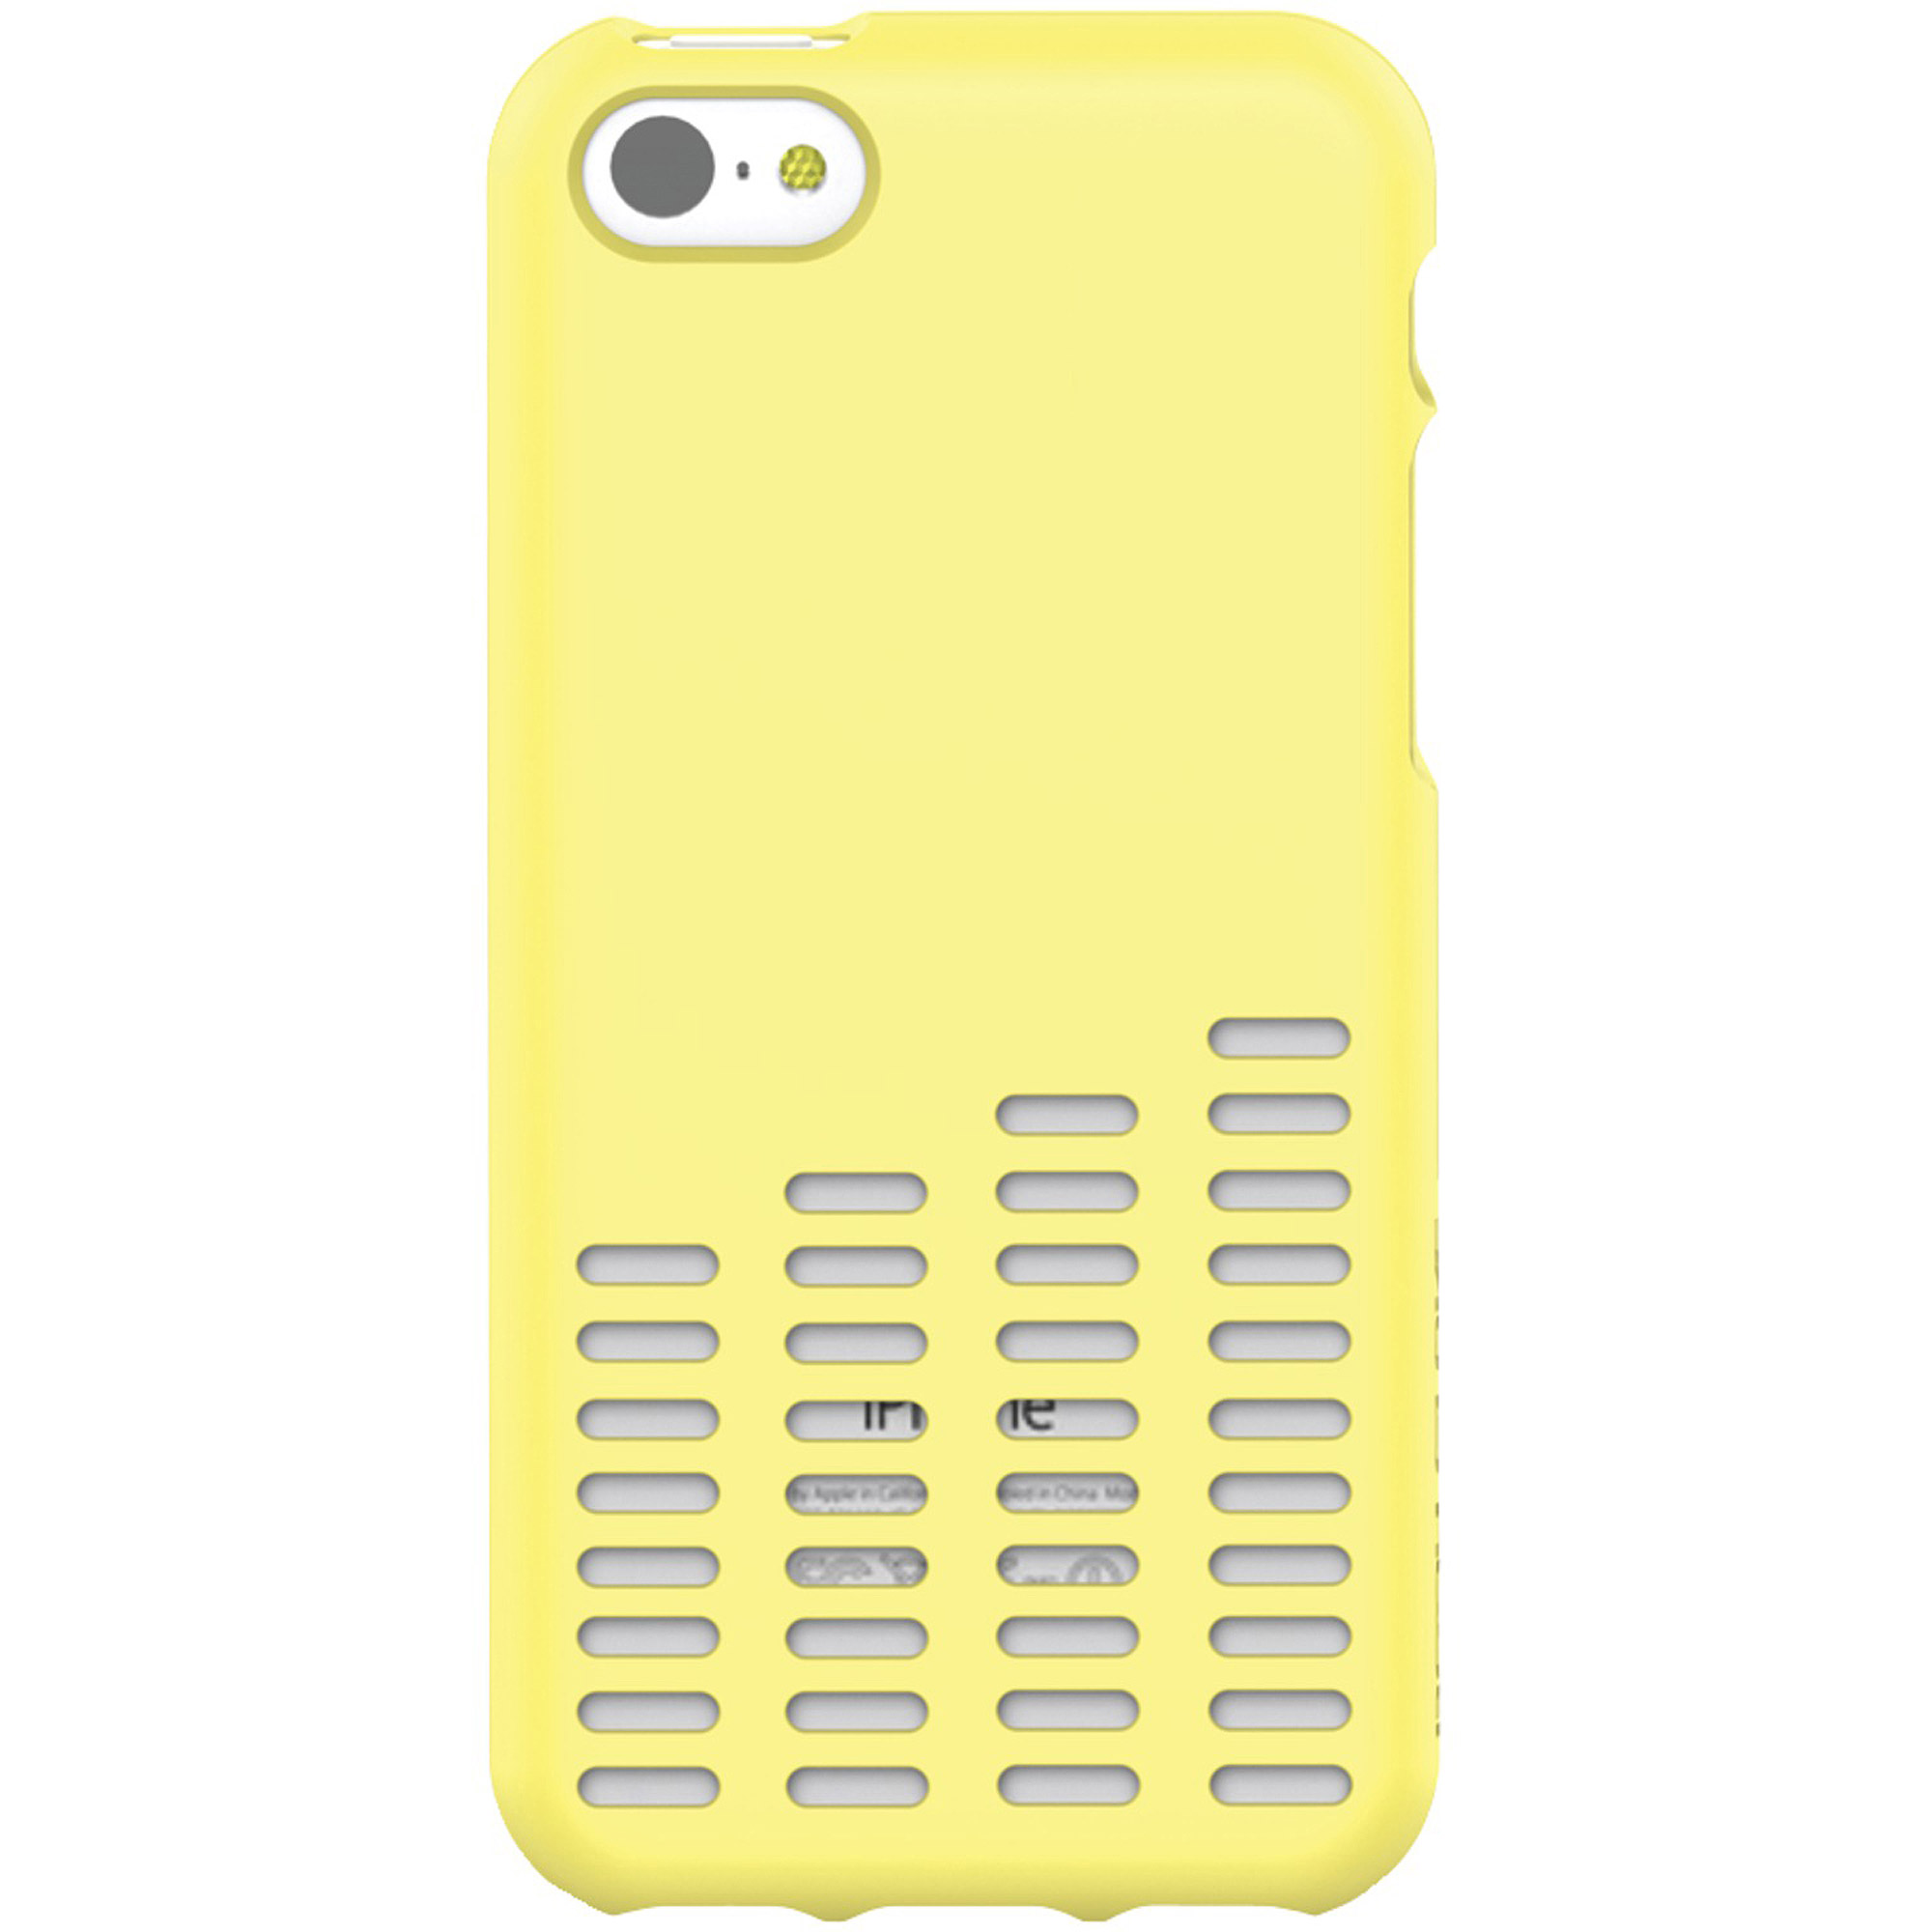 Body Glove Amp Case for Apple iPhone 5C